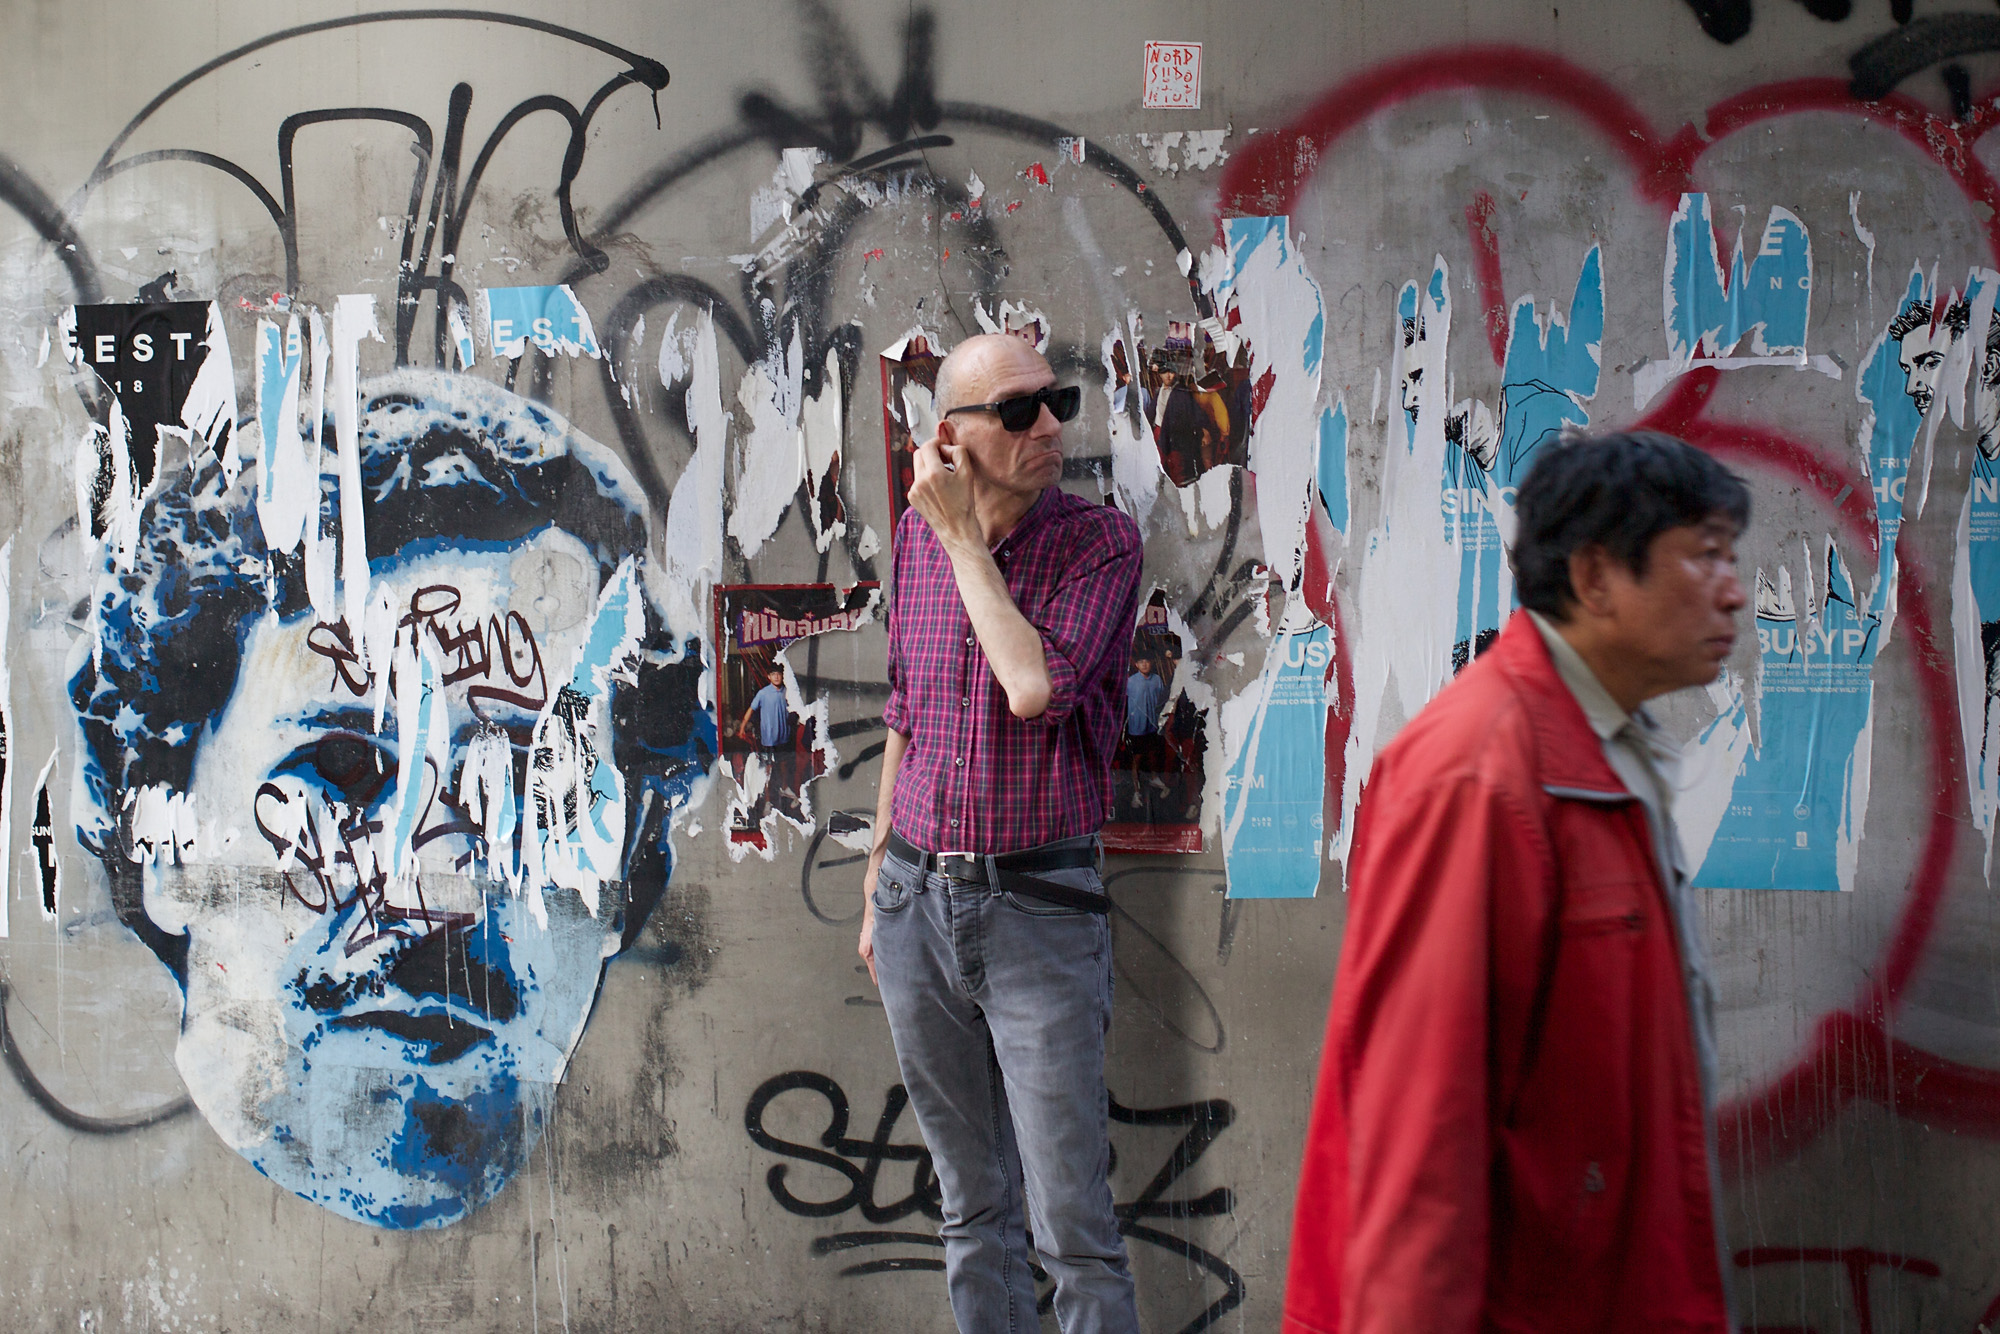 man in front of graffiti wall, looking anxious